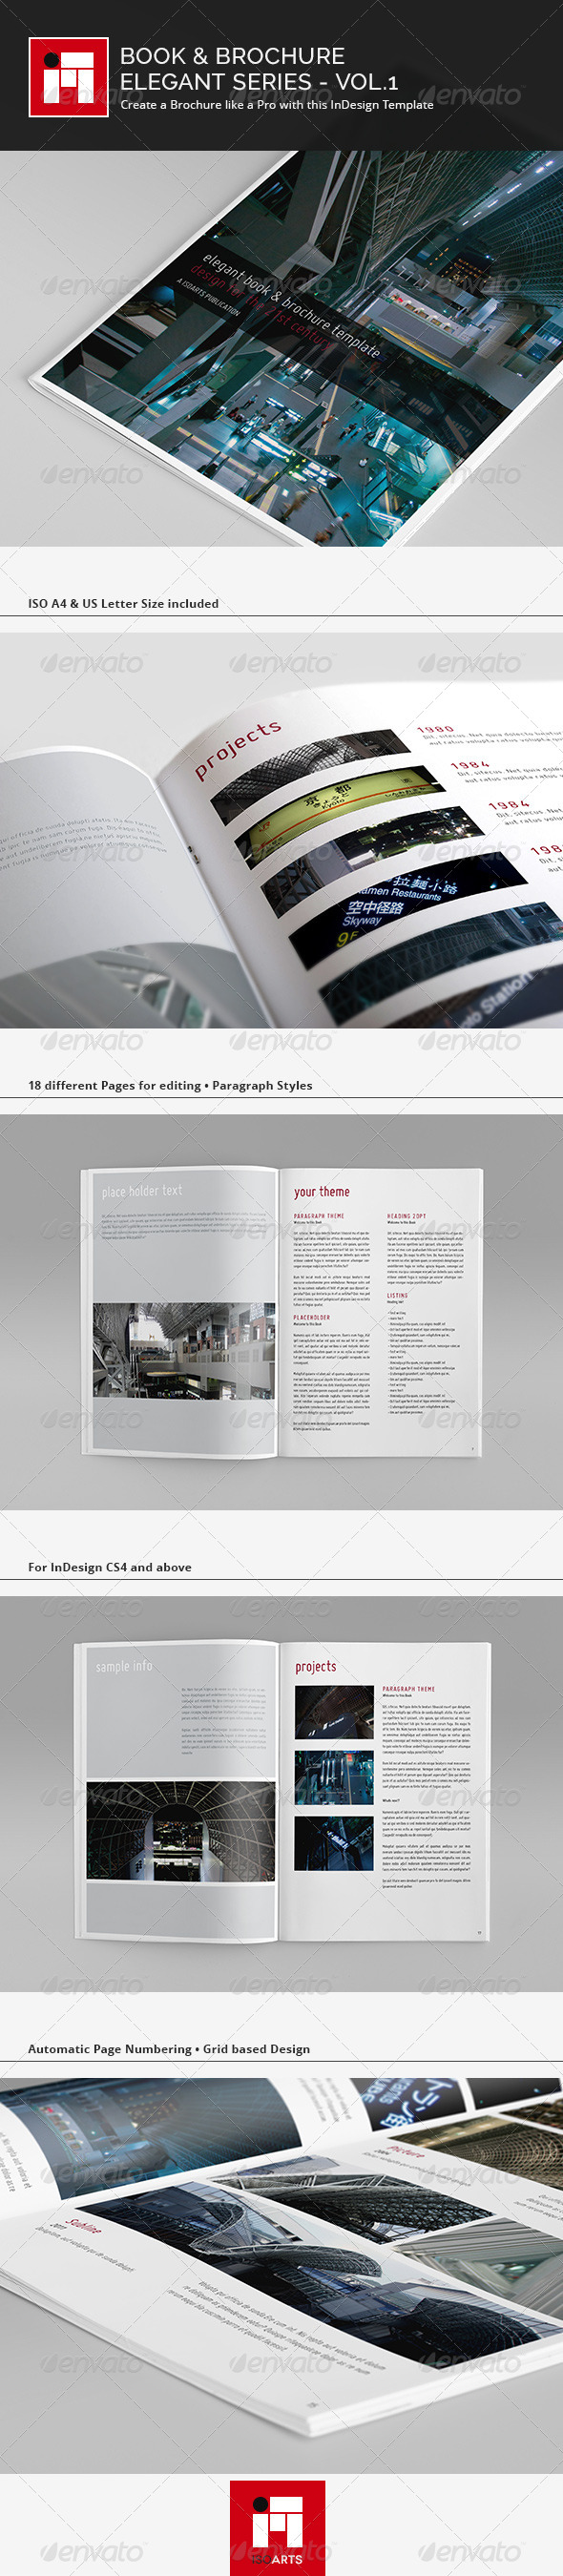 Portfolio Brochure Template - Vol.3 - Corporate Brochures